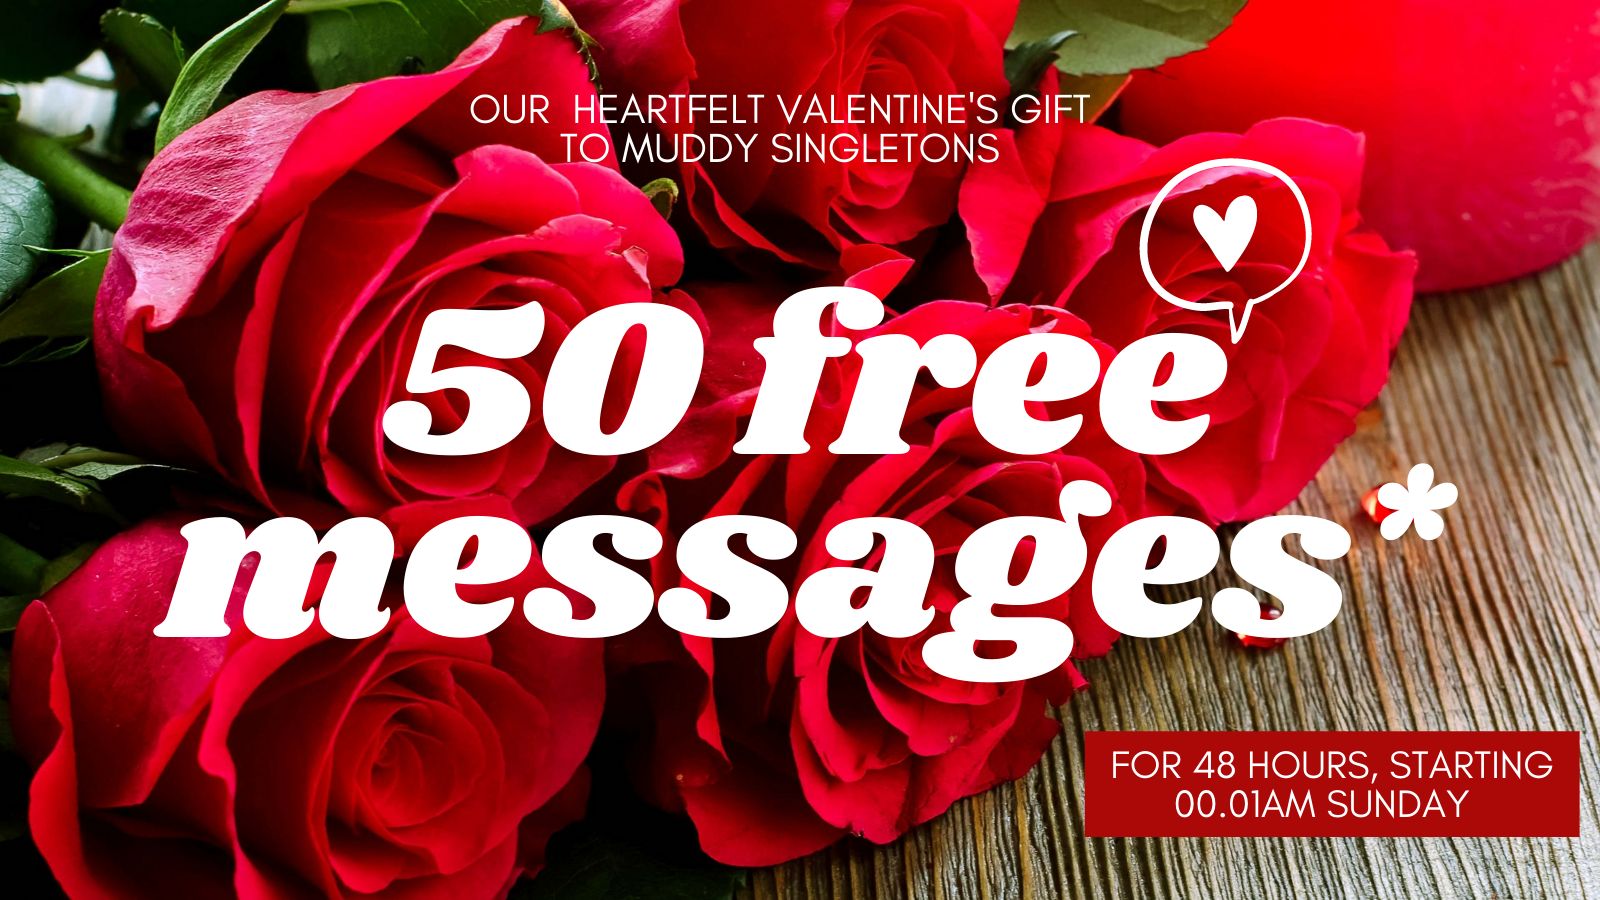 Be my virtual Valentine? Muddy Matches gift 50 free messages to all singletons